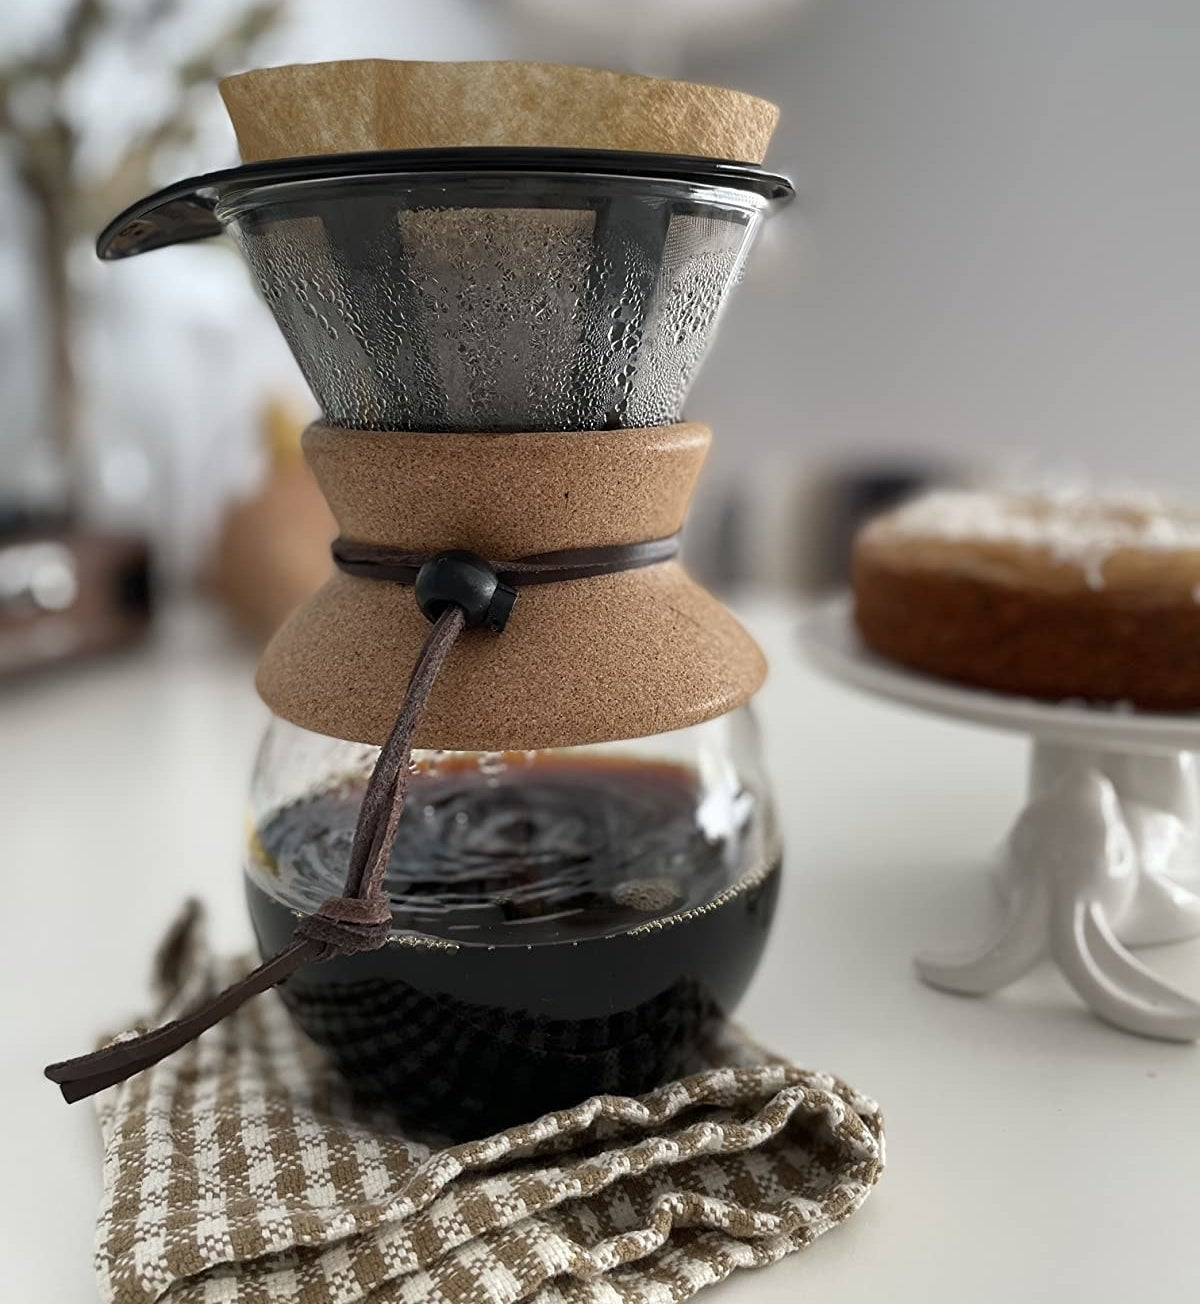 reviewer photo showing the pourover maker resting under a dishcloth